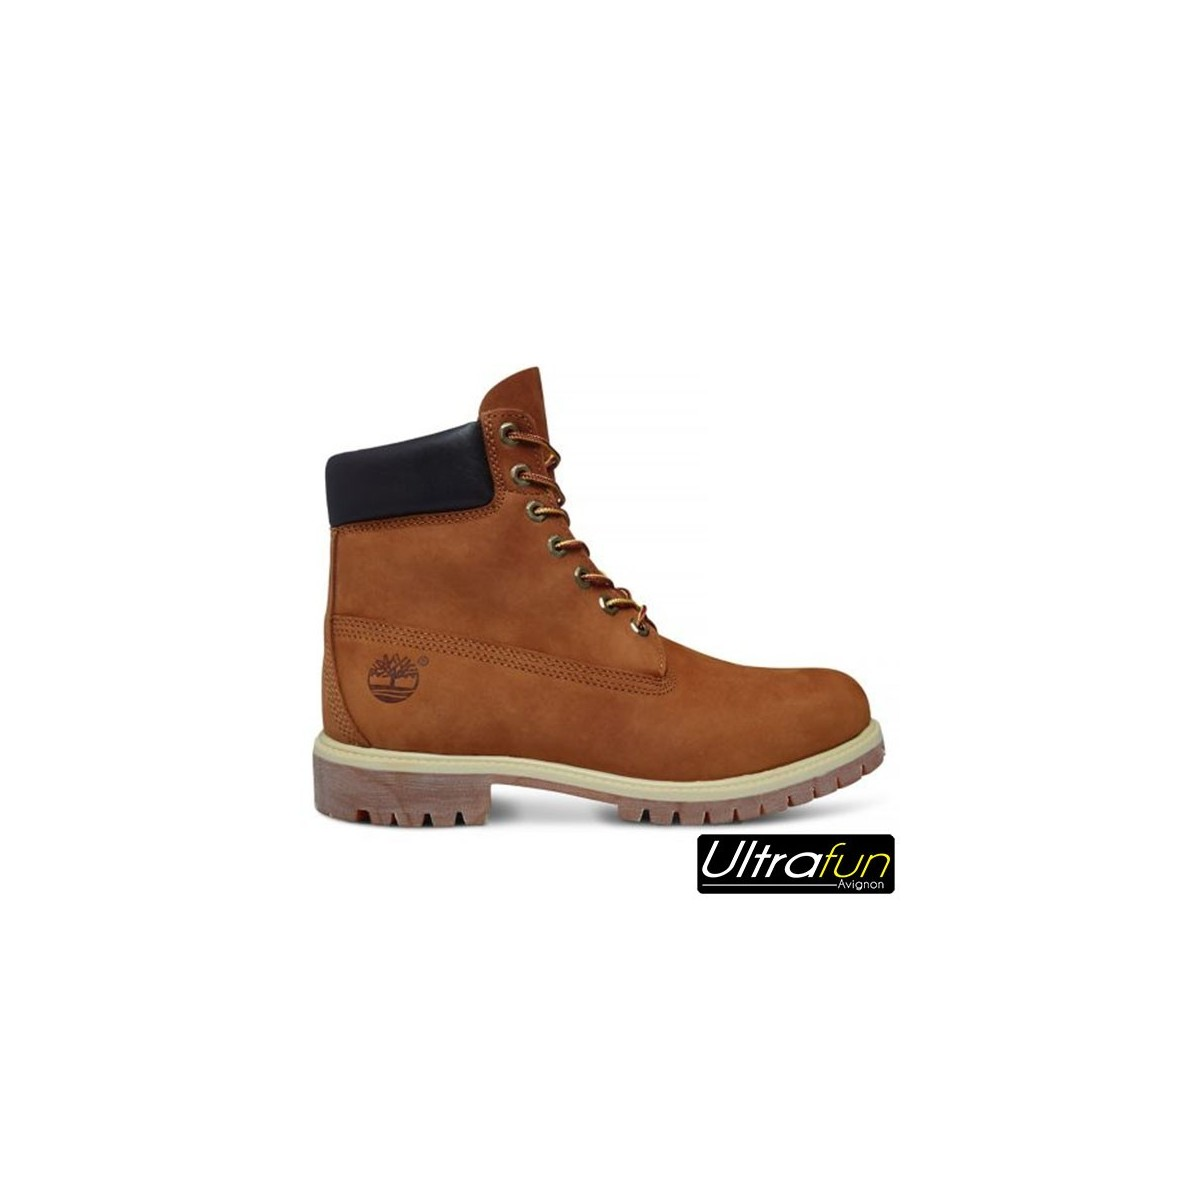 Chaussure Homme Timberland Chaussure Homme Premium Rouille Ultra Fun